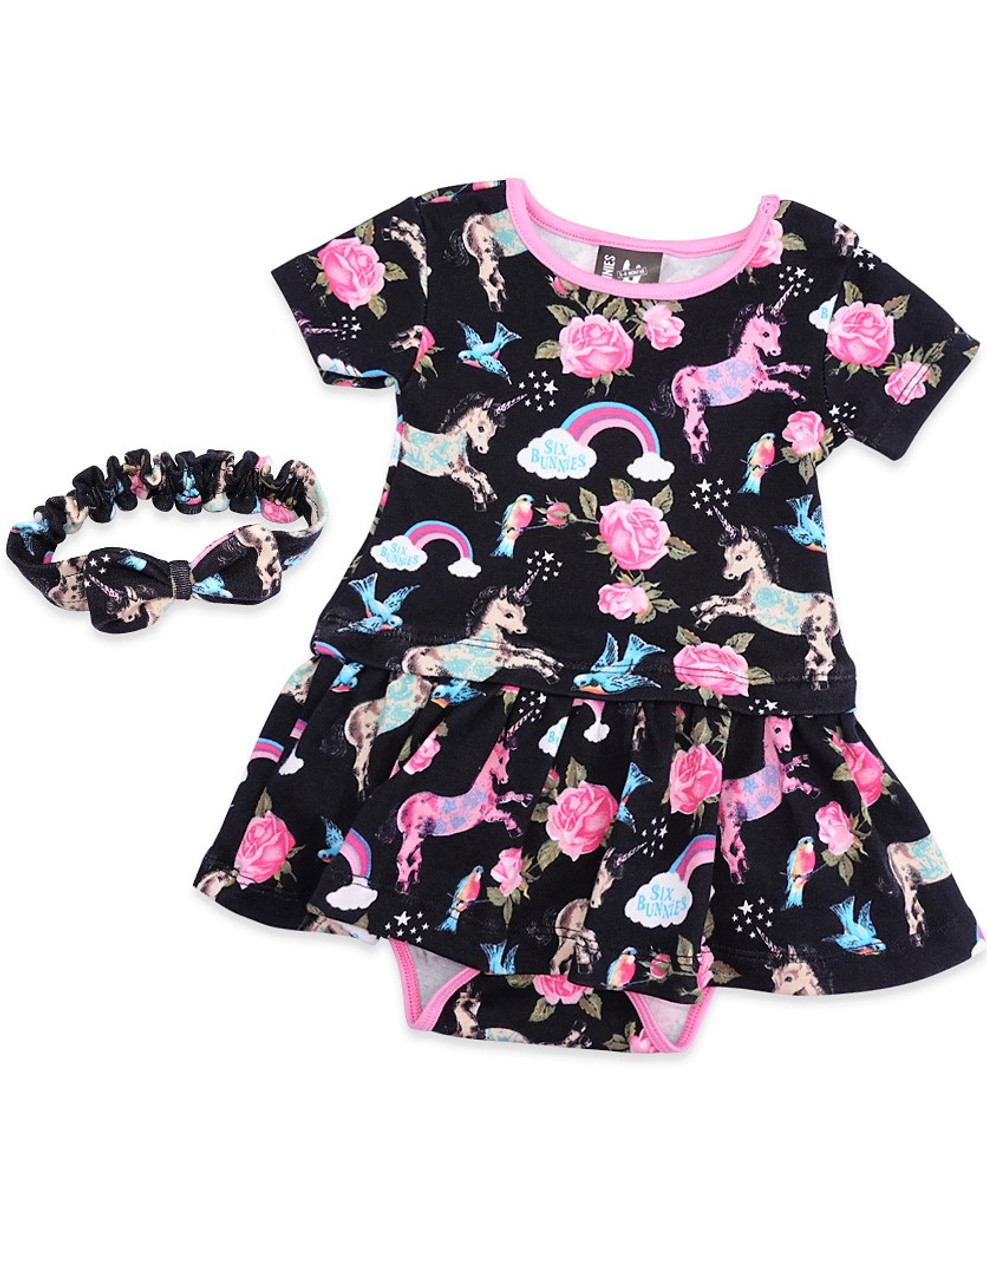 7f22dc188b89b Six Bunnies Wonderland Onesie Dress & Hairband Set